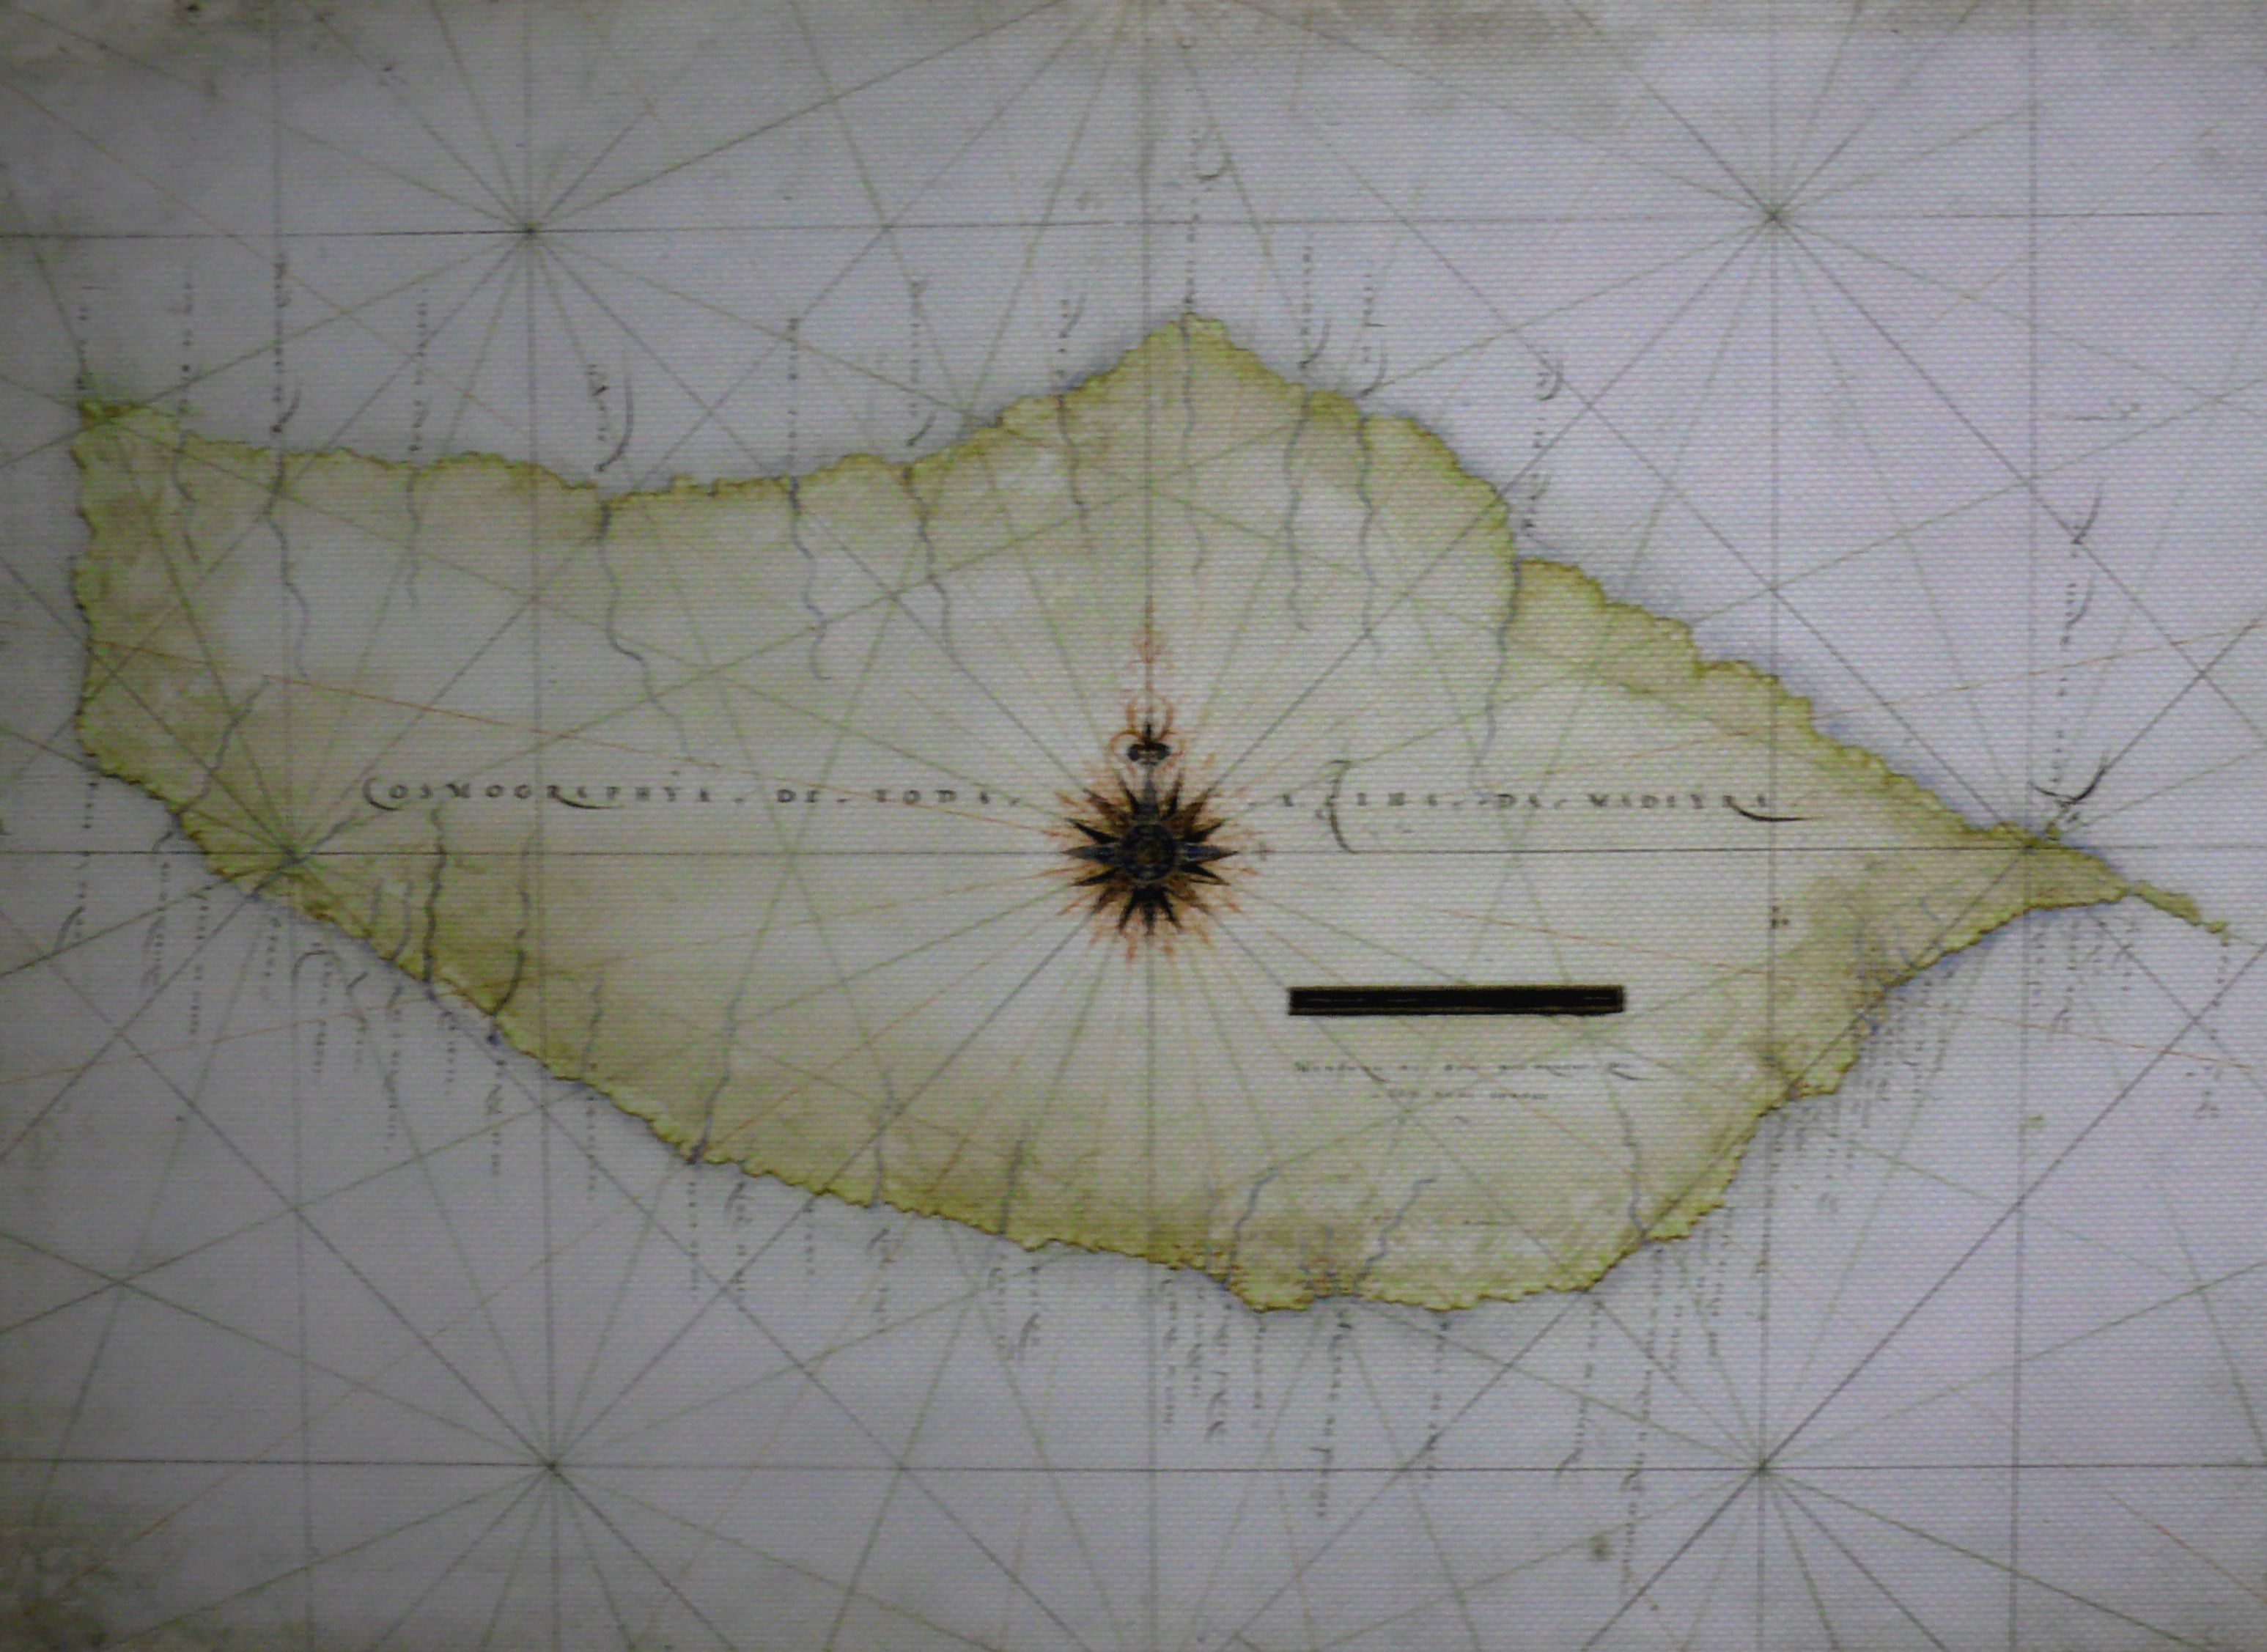 An Early chart of Madeira